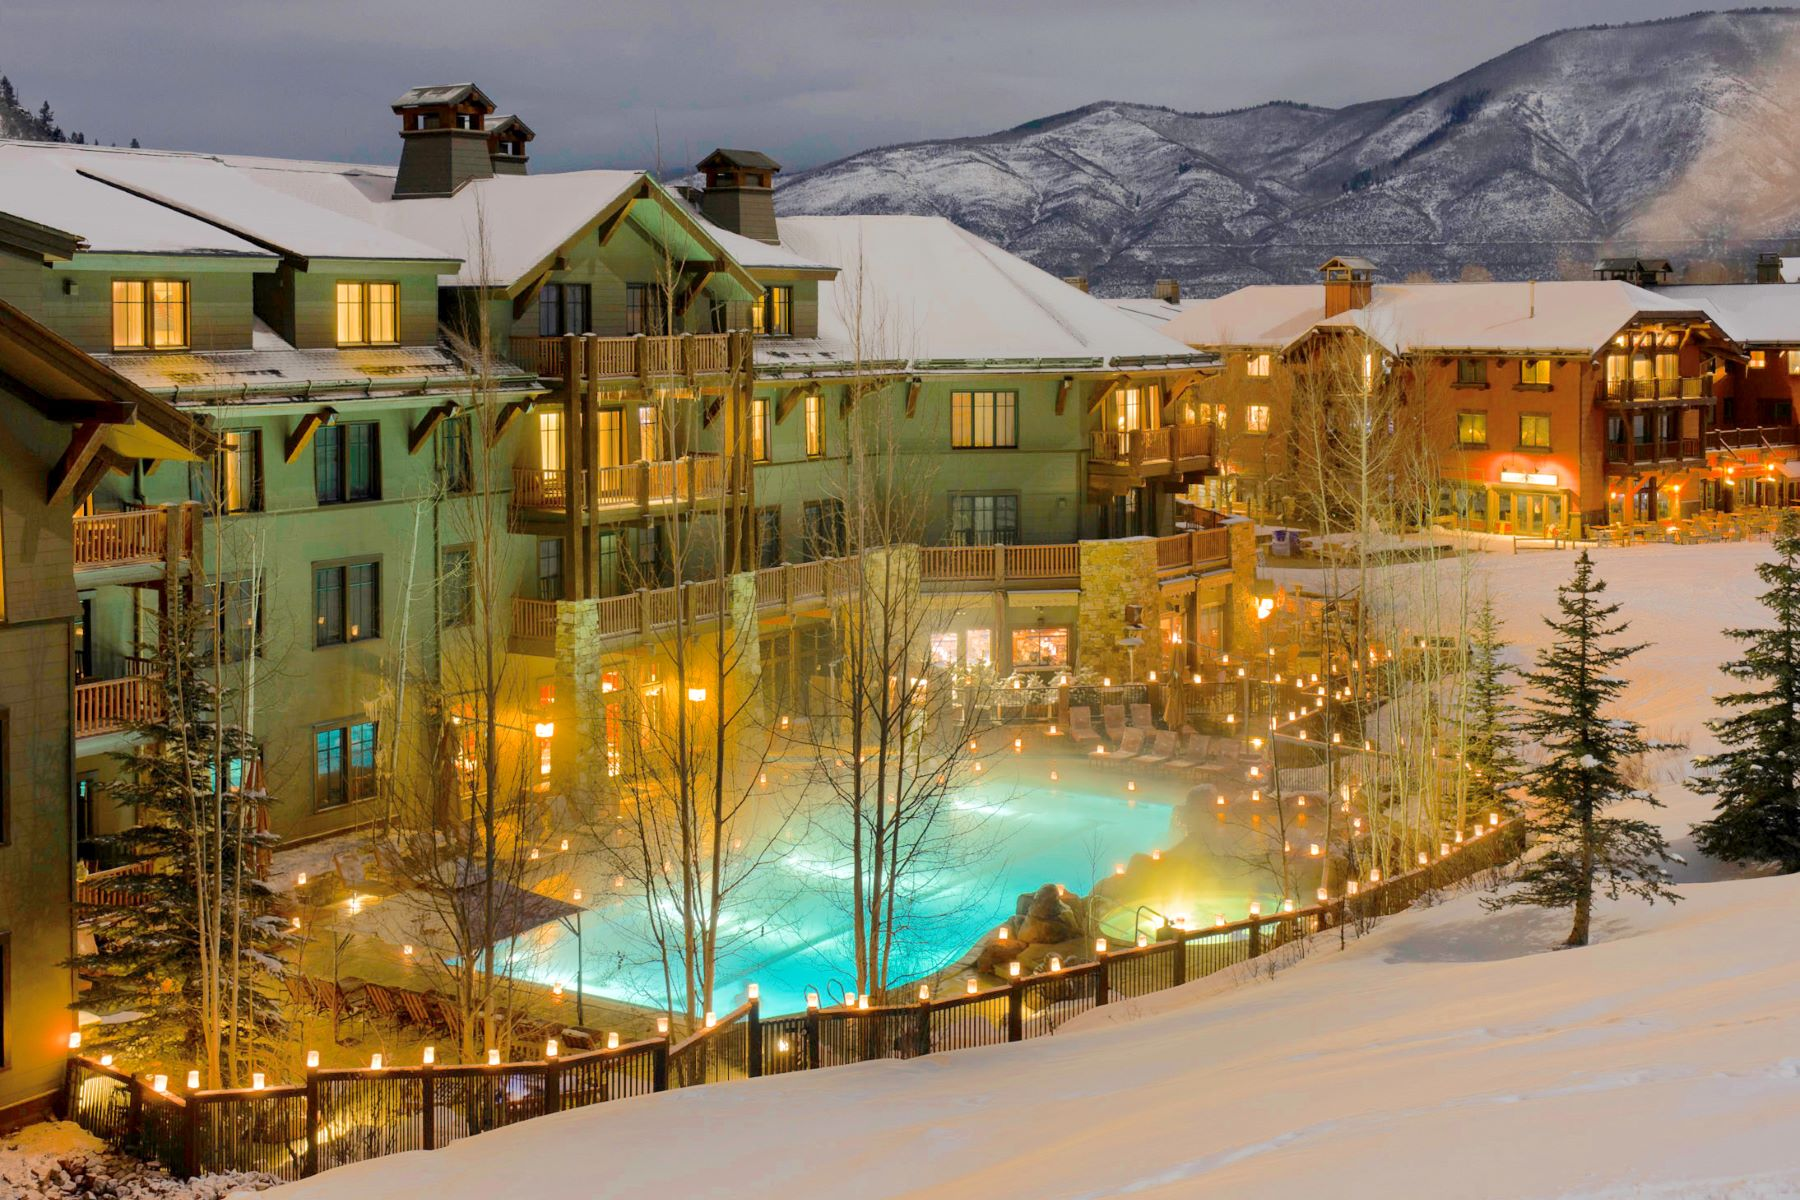 Fractional Ownership for Sale at Ritz-Carlton Club Fractional Ownership, 2204, Interest 11 0197 Prospector Road 2204, Interest 11 Aspen, Colorado 81611 United States